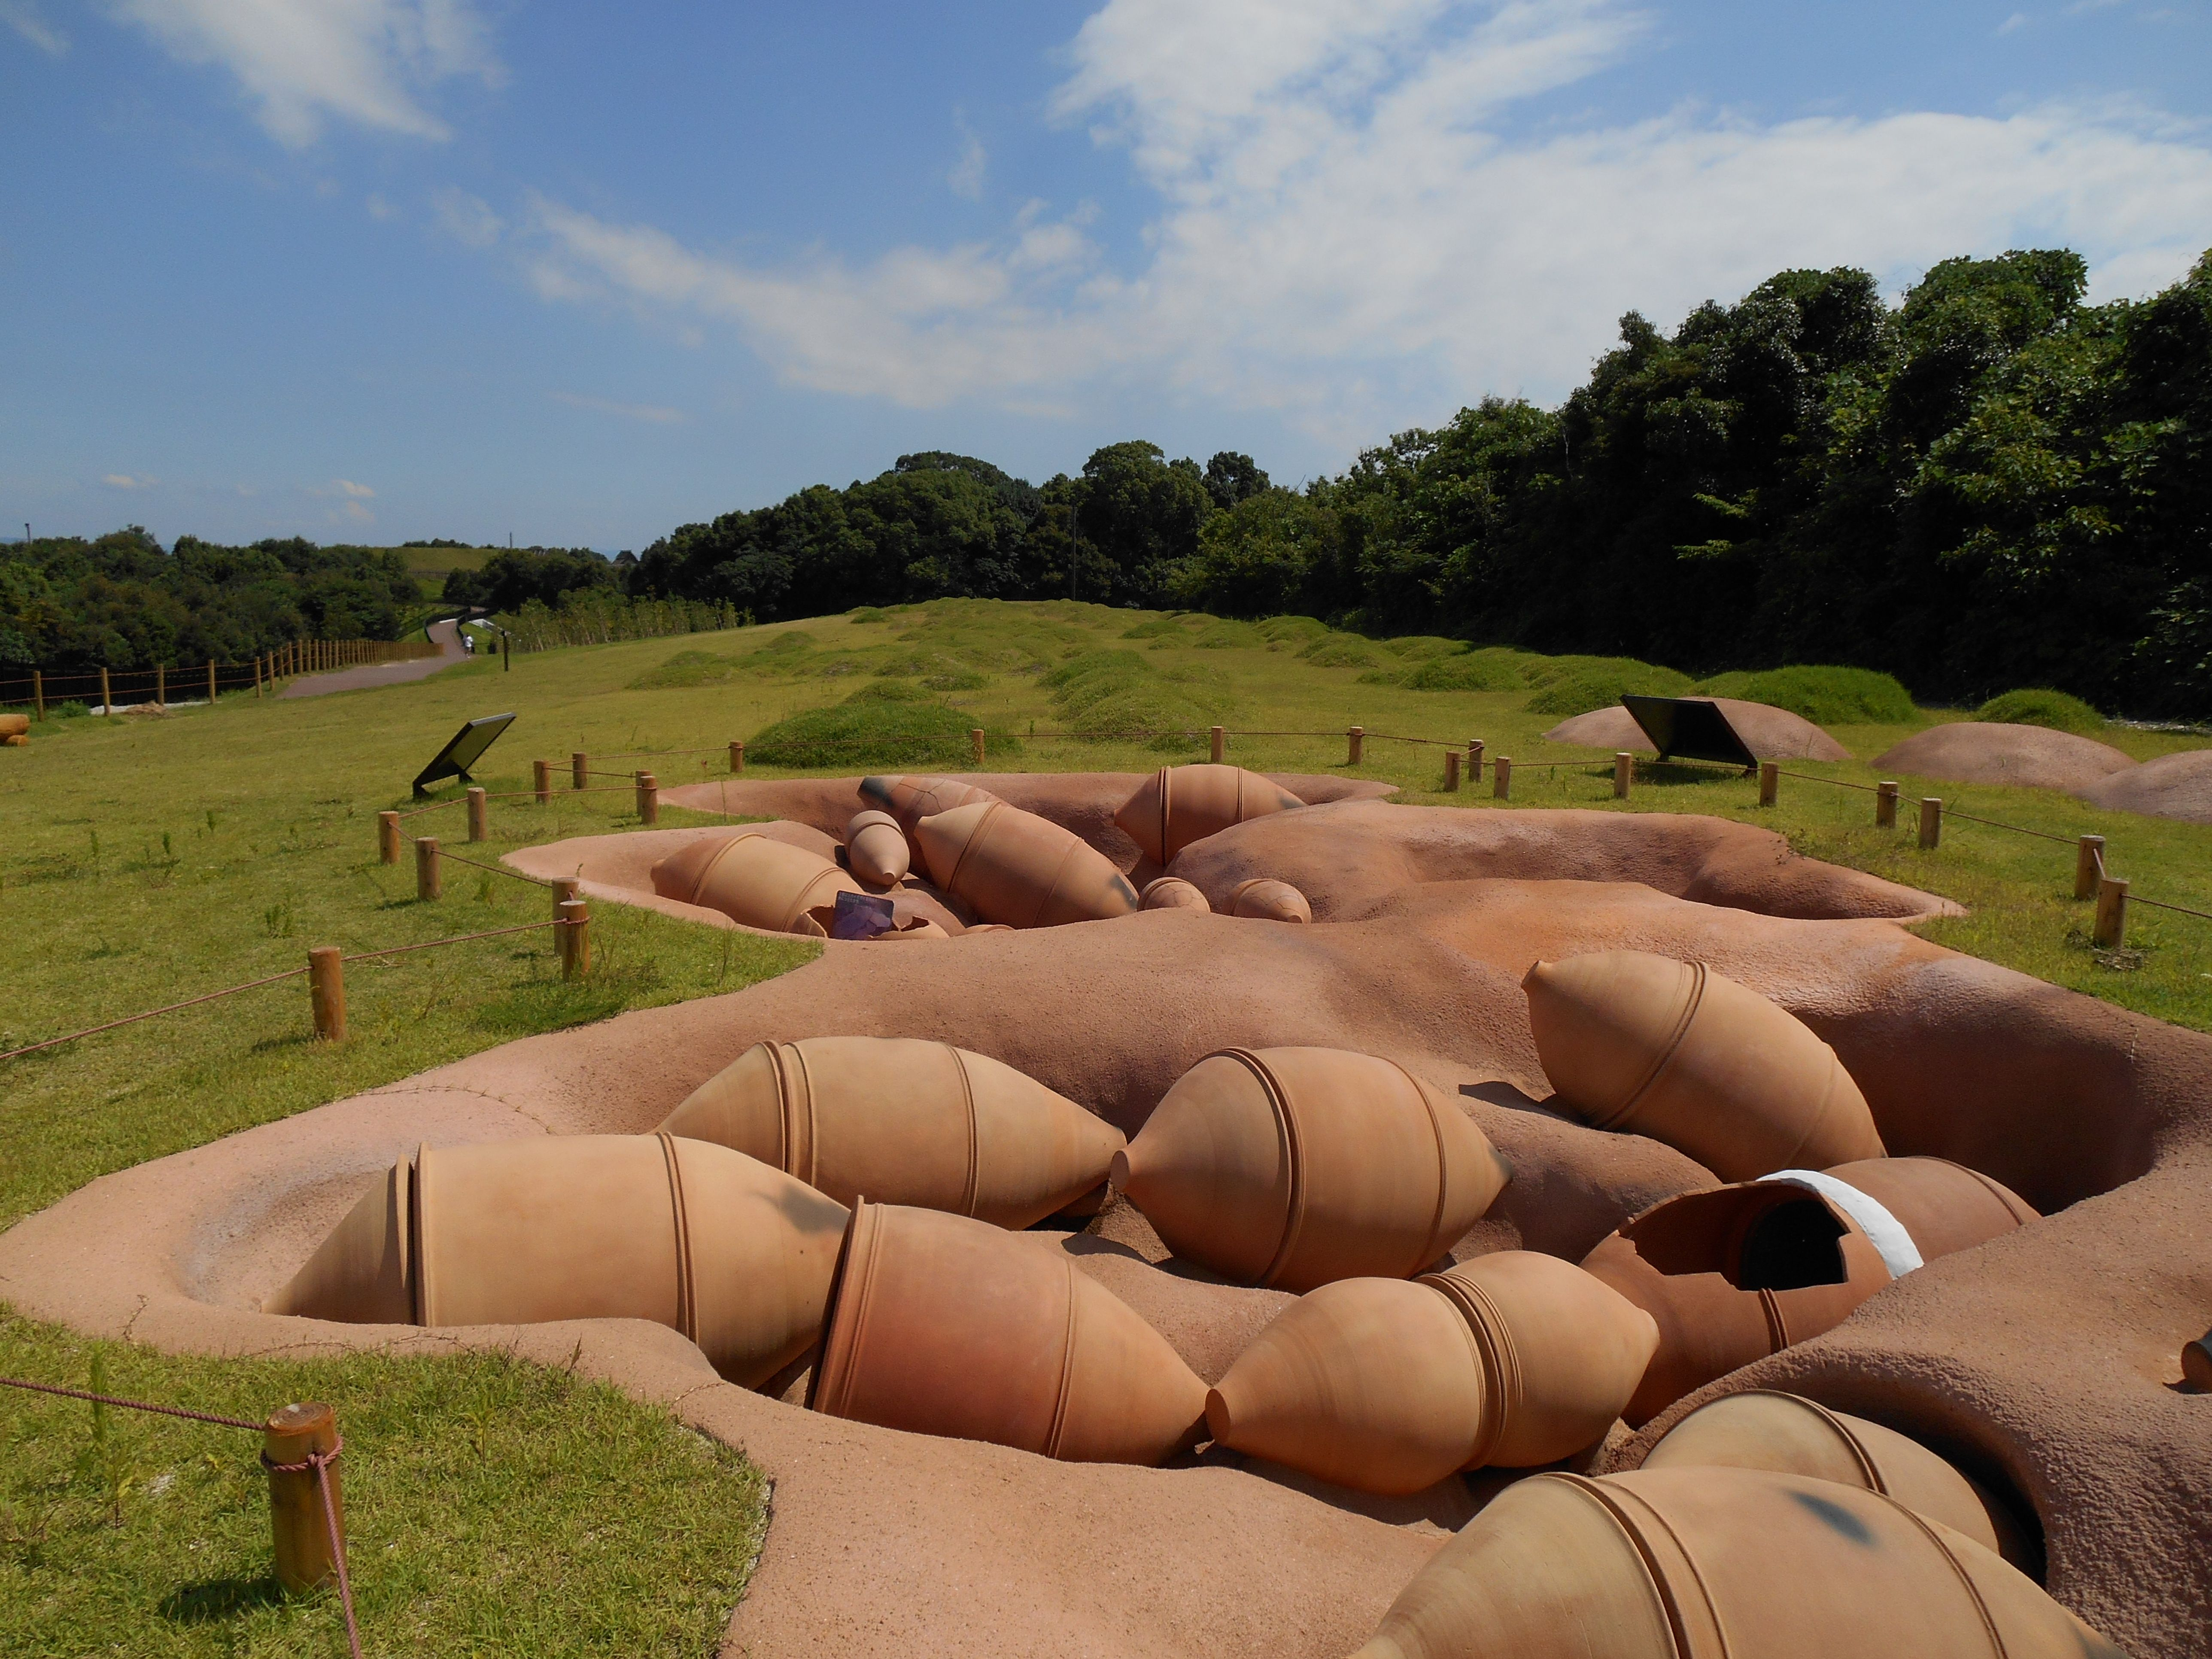 A reconstructed area of Yayoi Period cemetery at Yoshinogari site in Saga, Japan